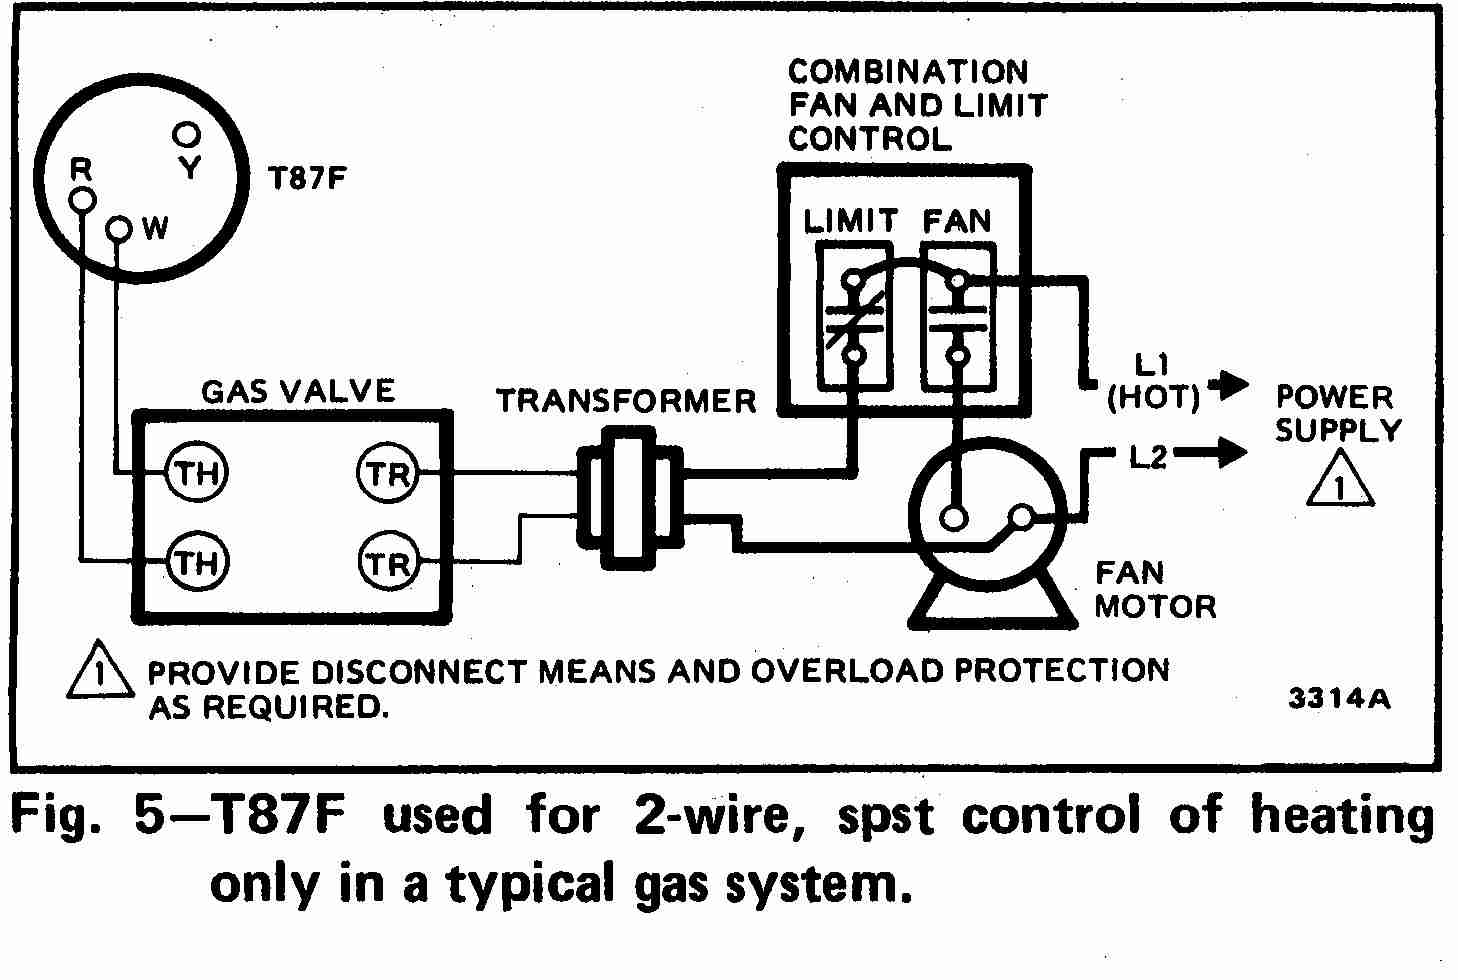 room thermostat wiring diagrams for hvac systems rh inspectapedia com mr heater thermostat wiring diagram water heater thermostat wiring diagram